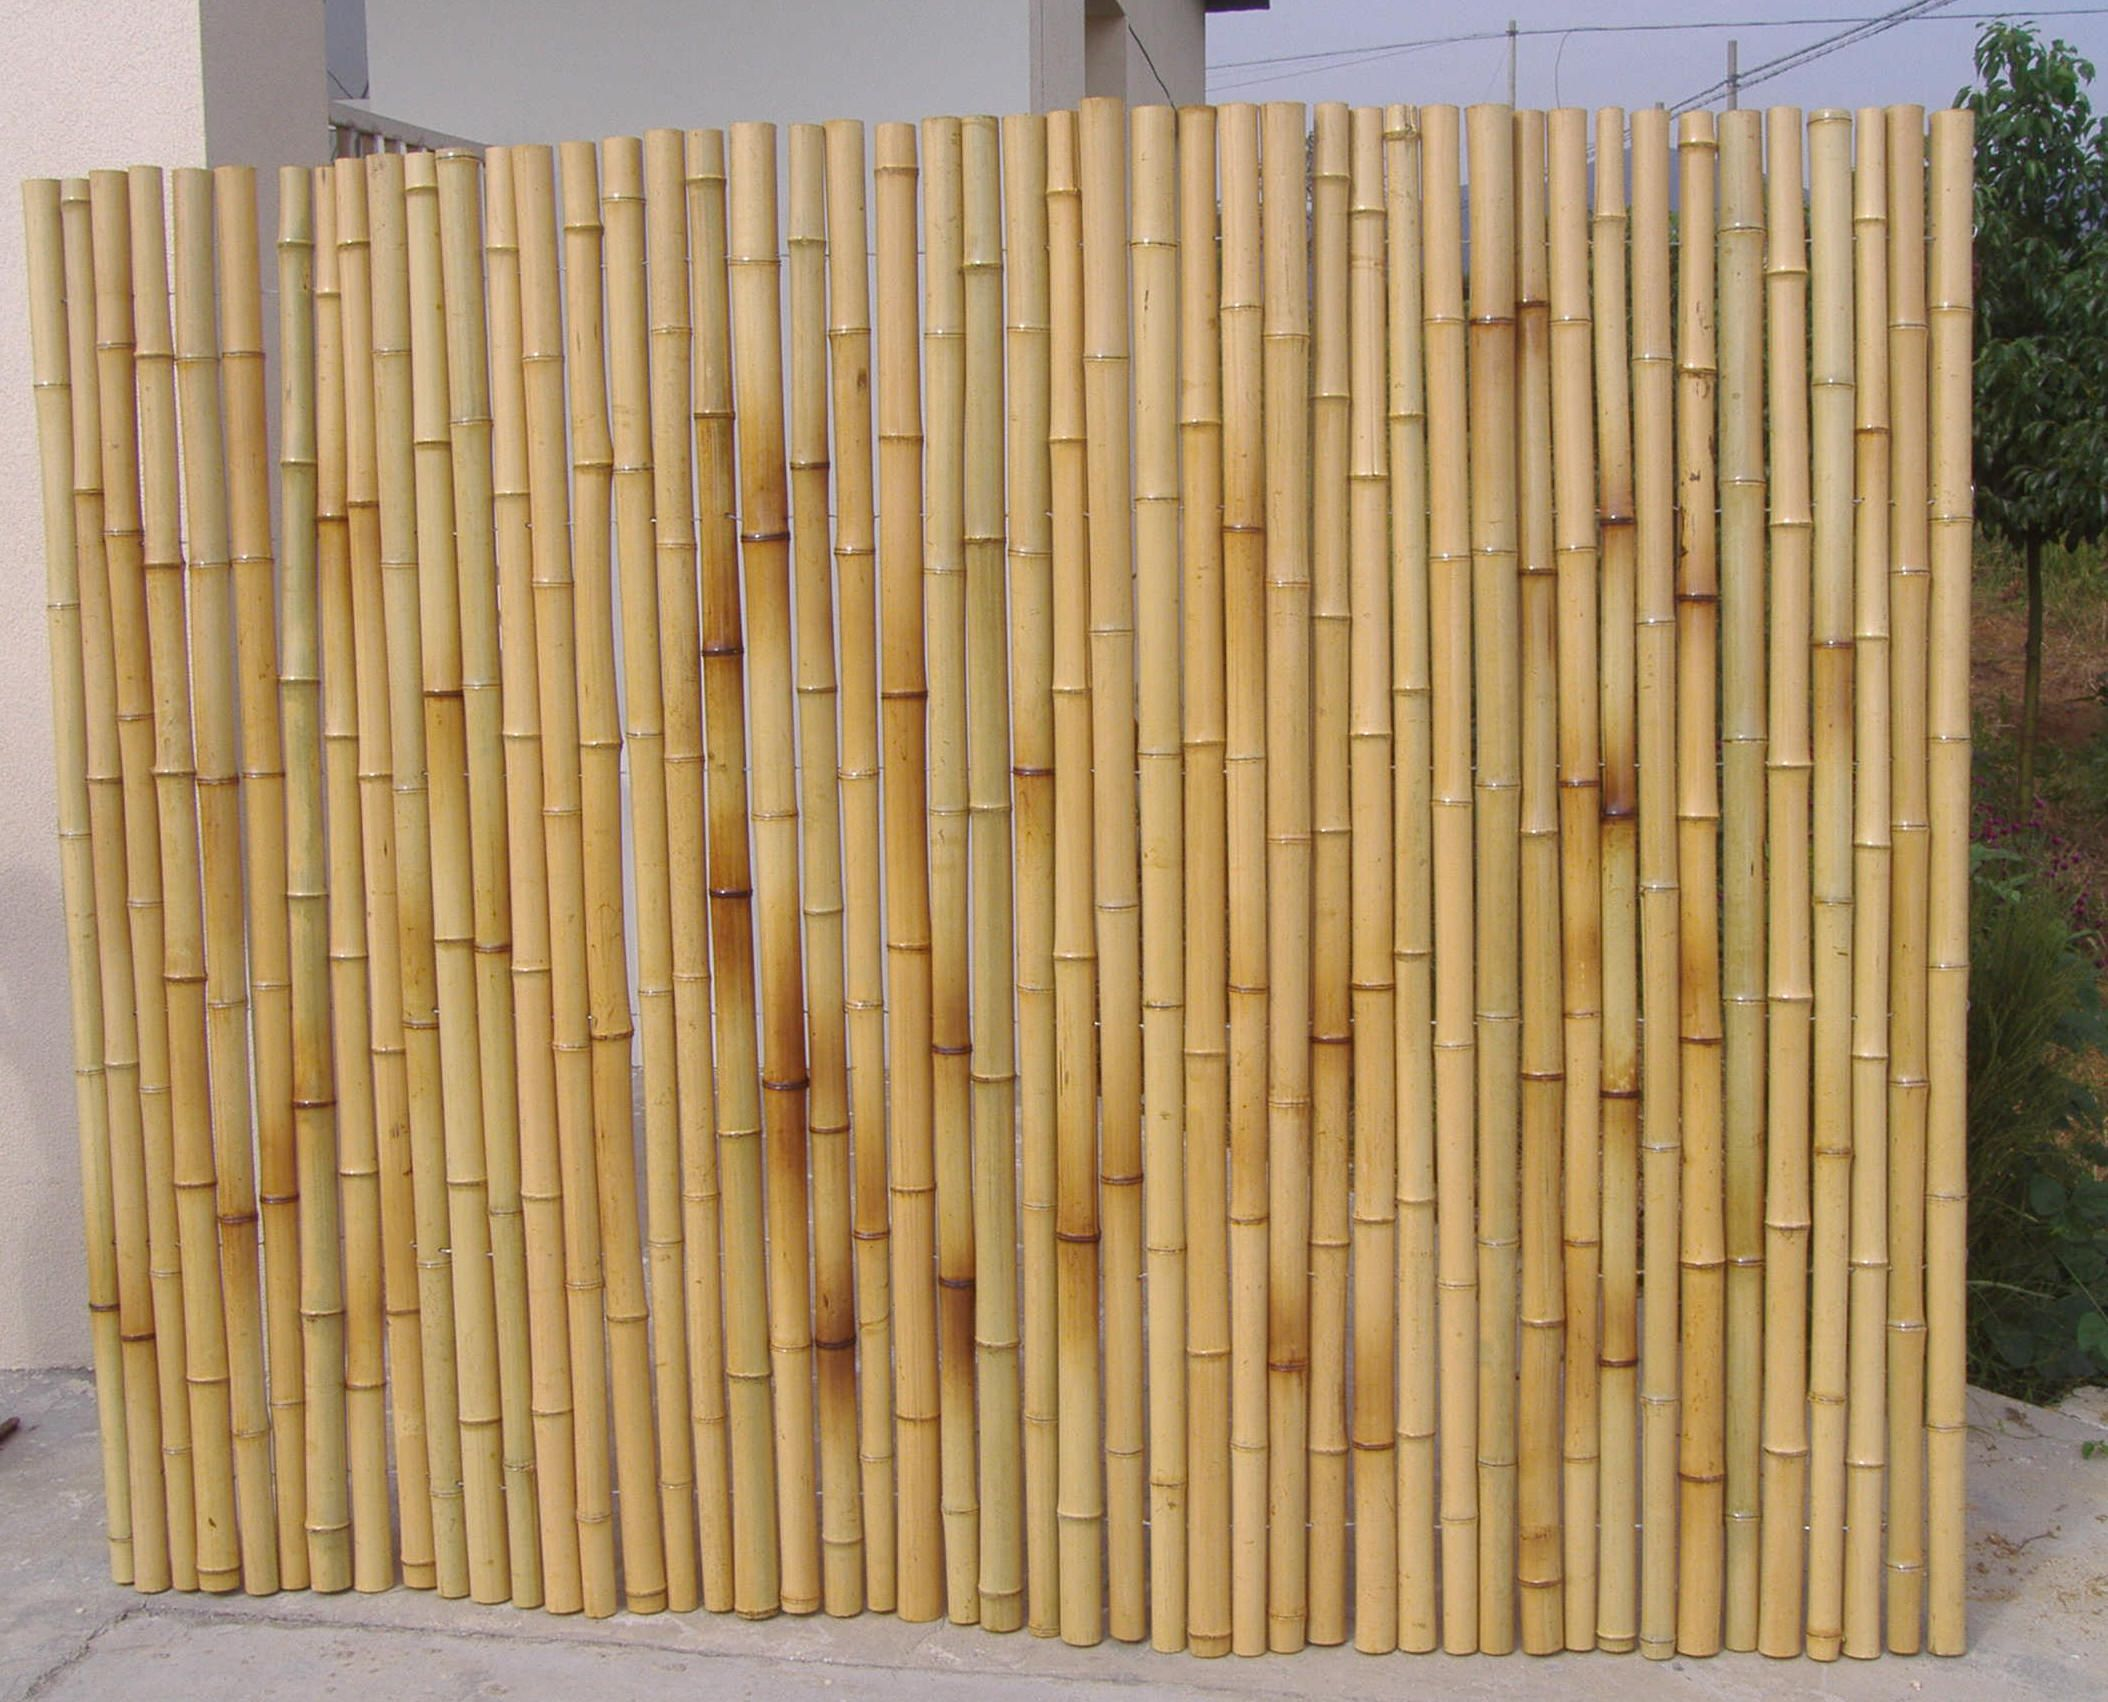 How To Build A Bamboo Fence - LivingGreenAndFrugally.com